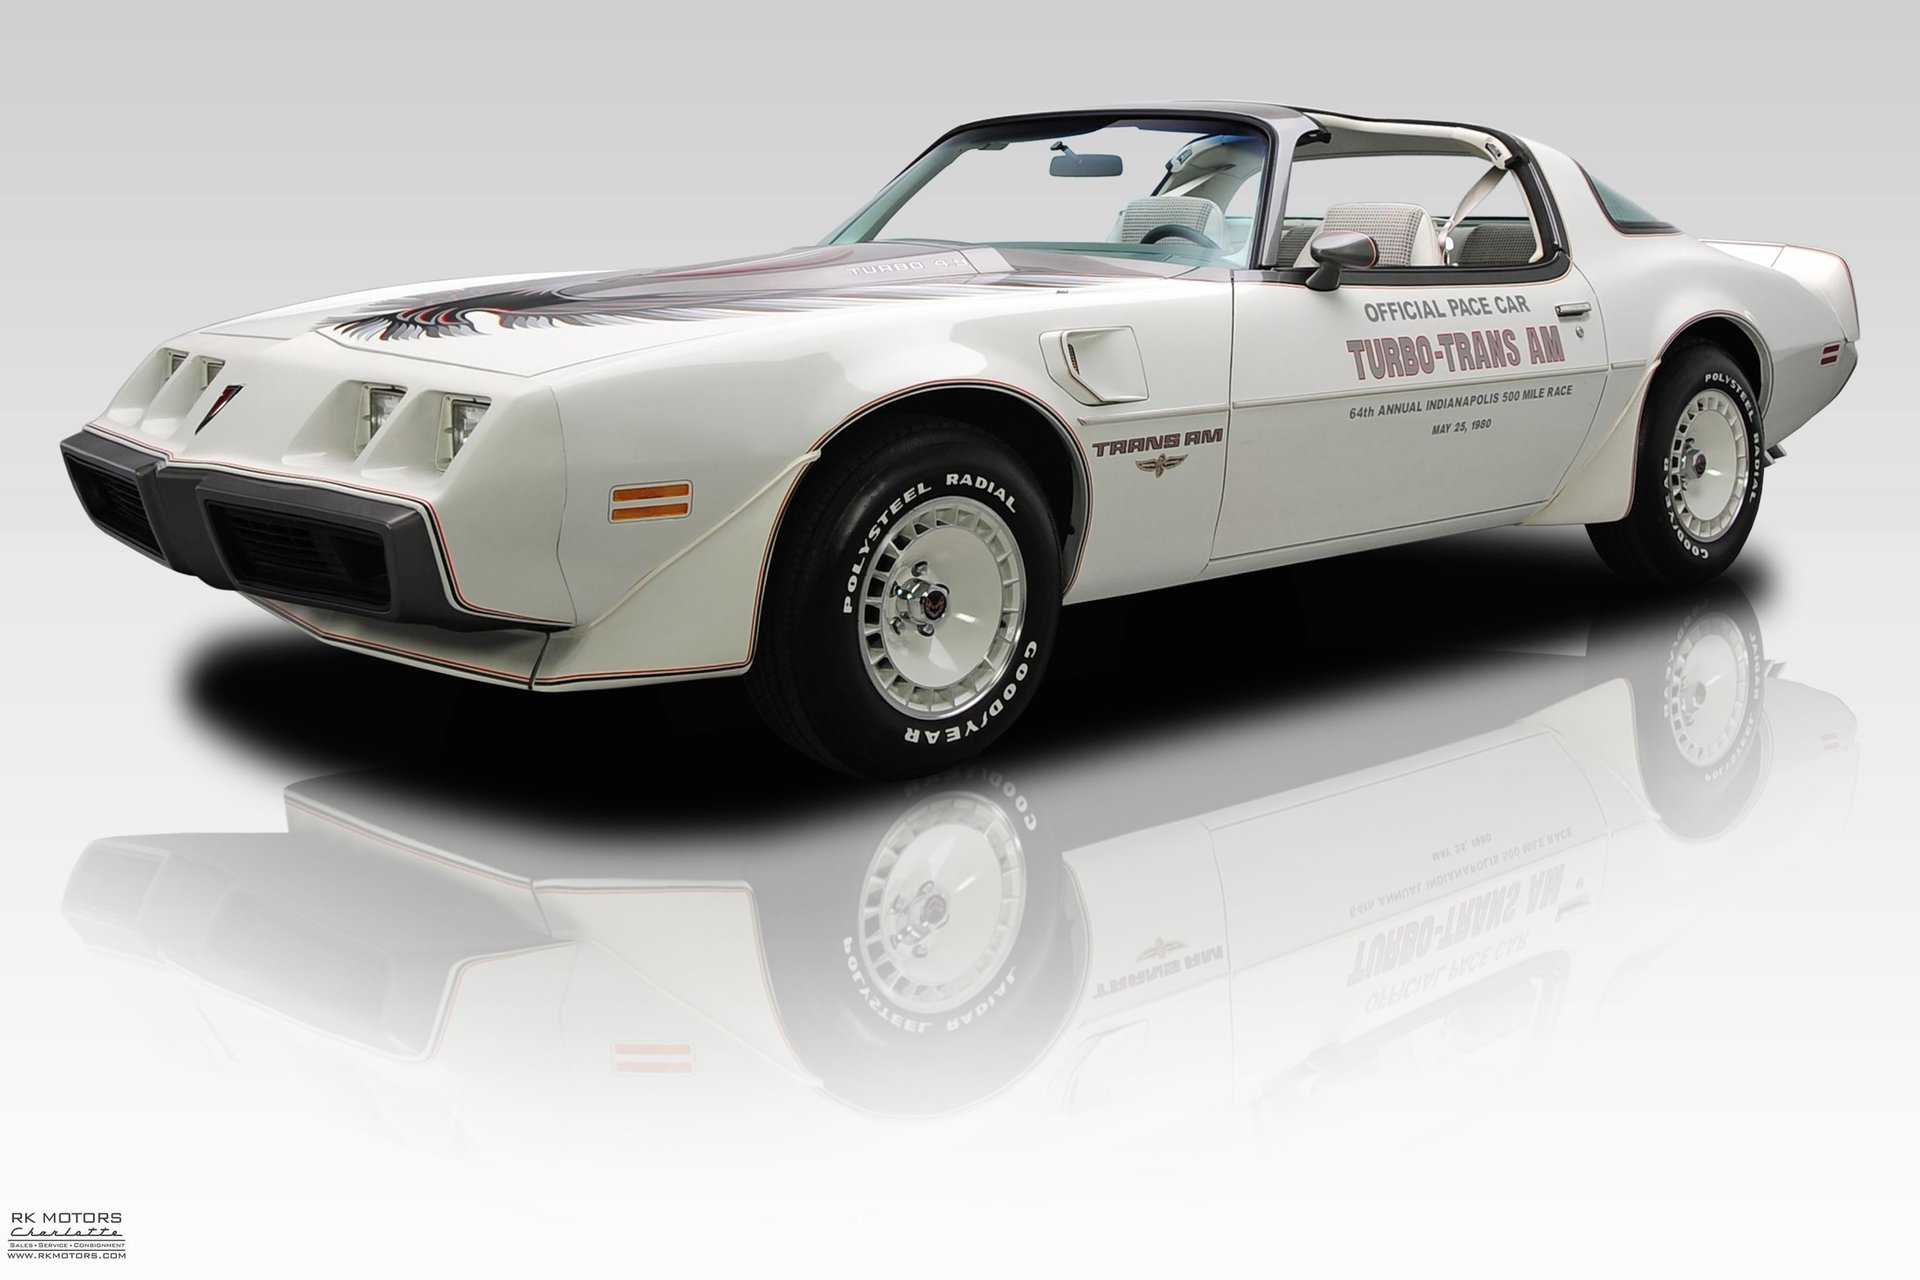 1980 pontiac firebird trans am turbo pace car